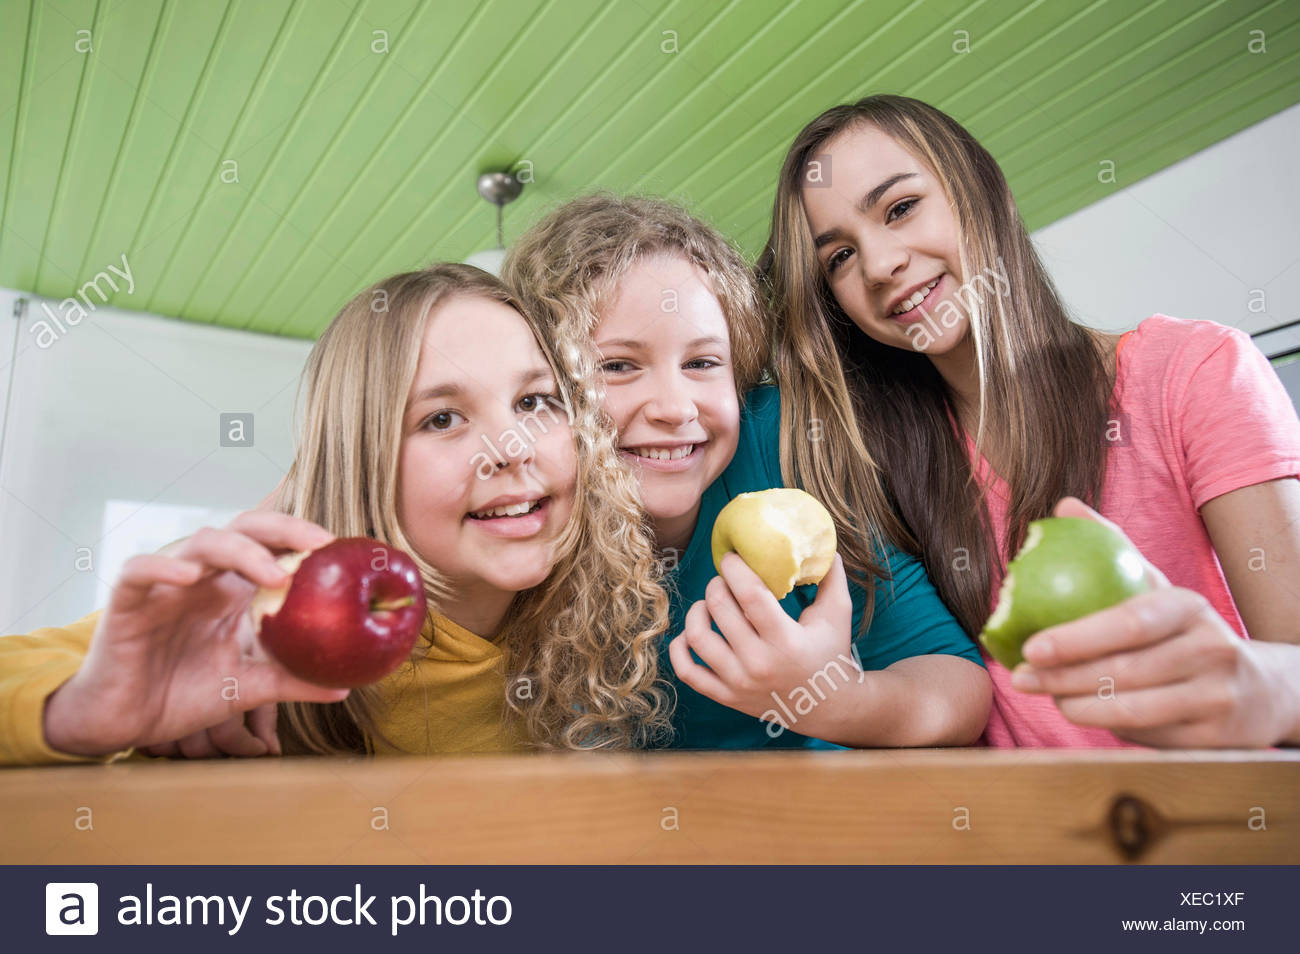 Girls in kitchen eating apples - Stock Image